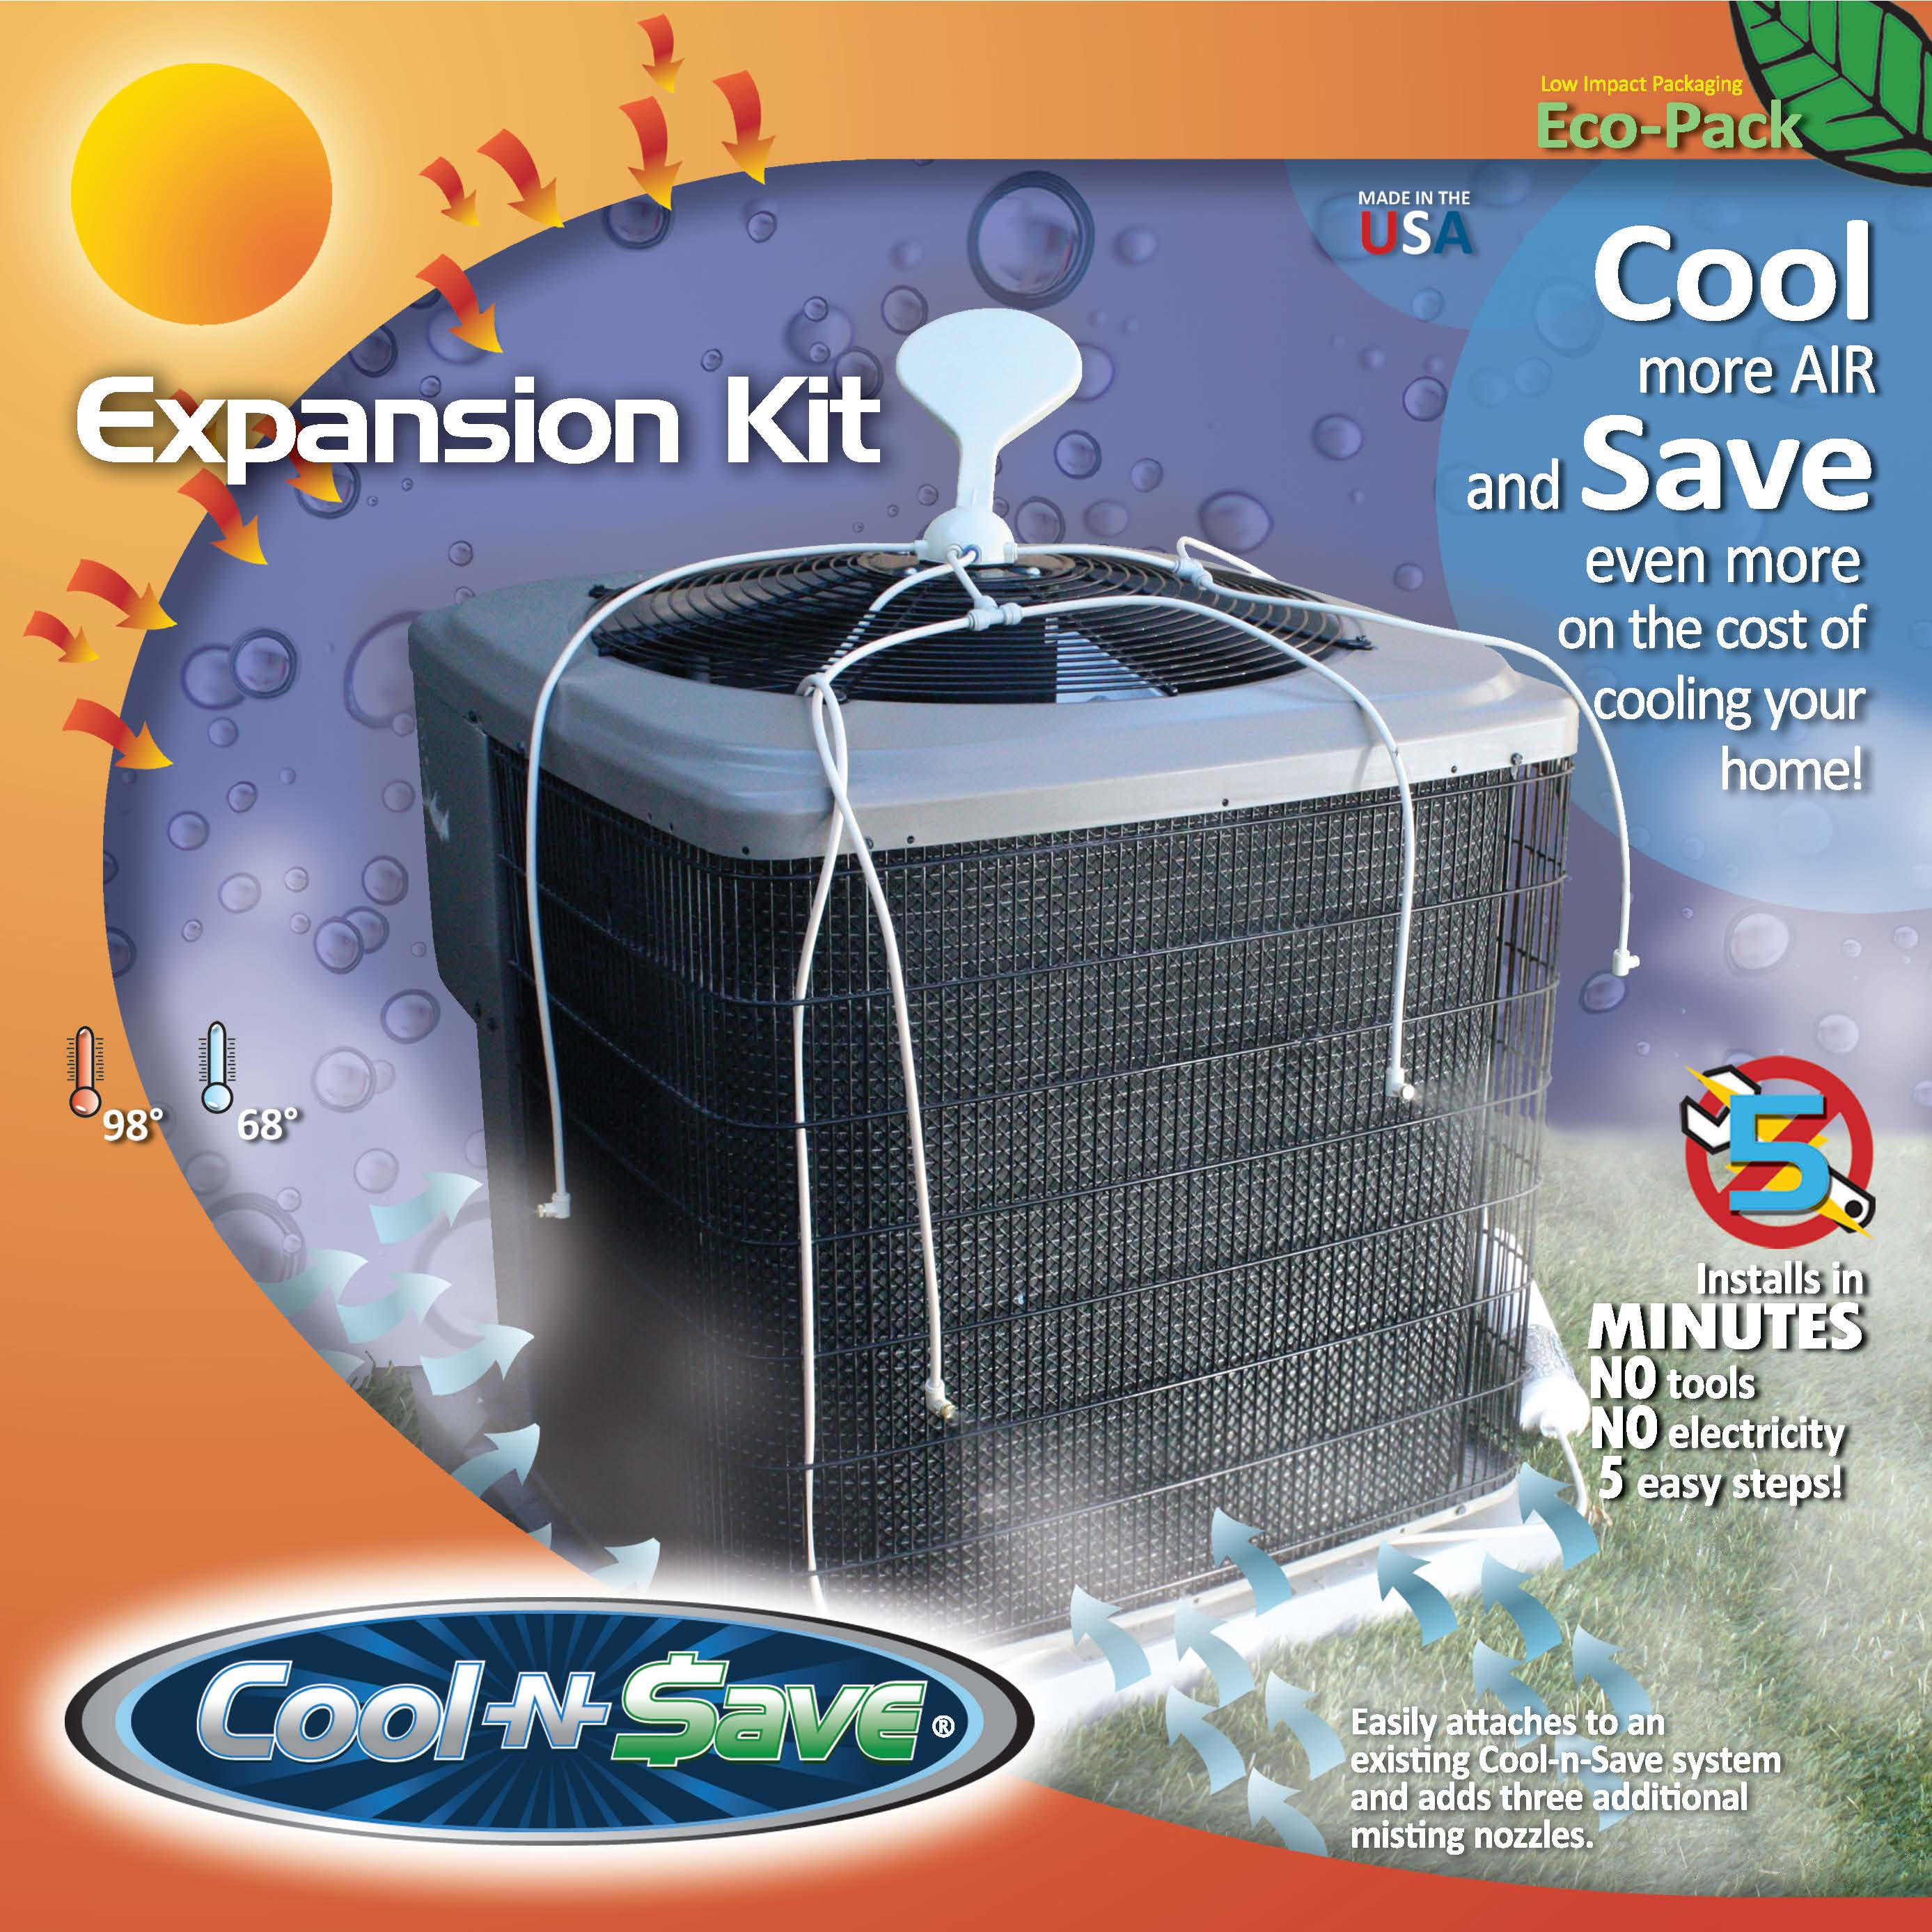 Misting Systems For Ac Units : Cool n save expansion kit keeping ac units